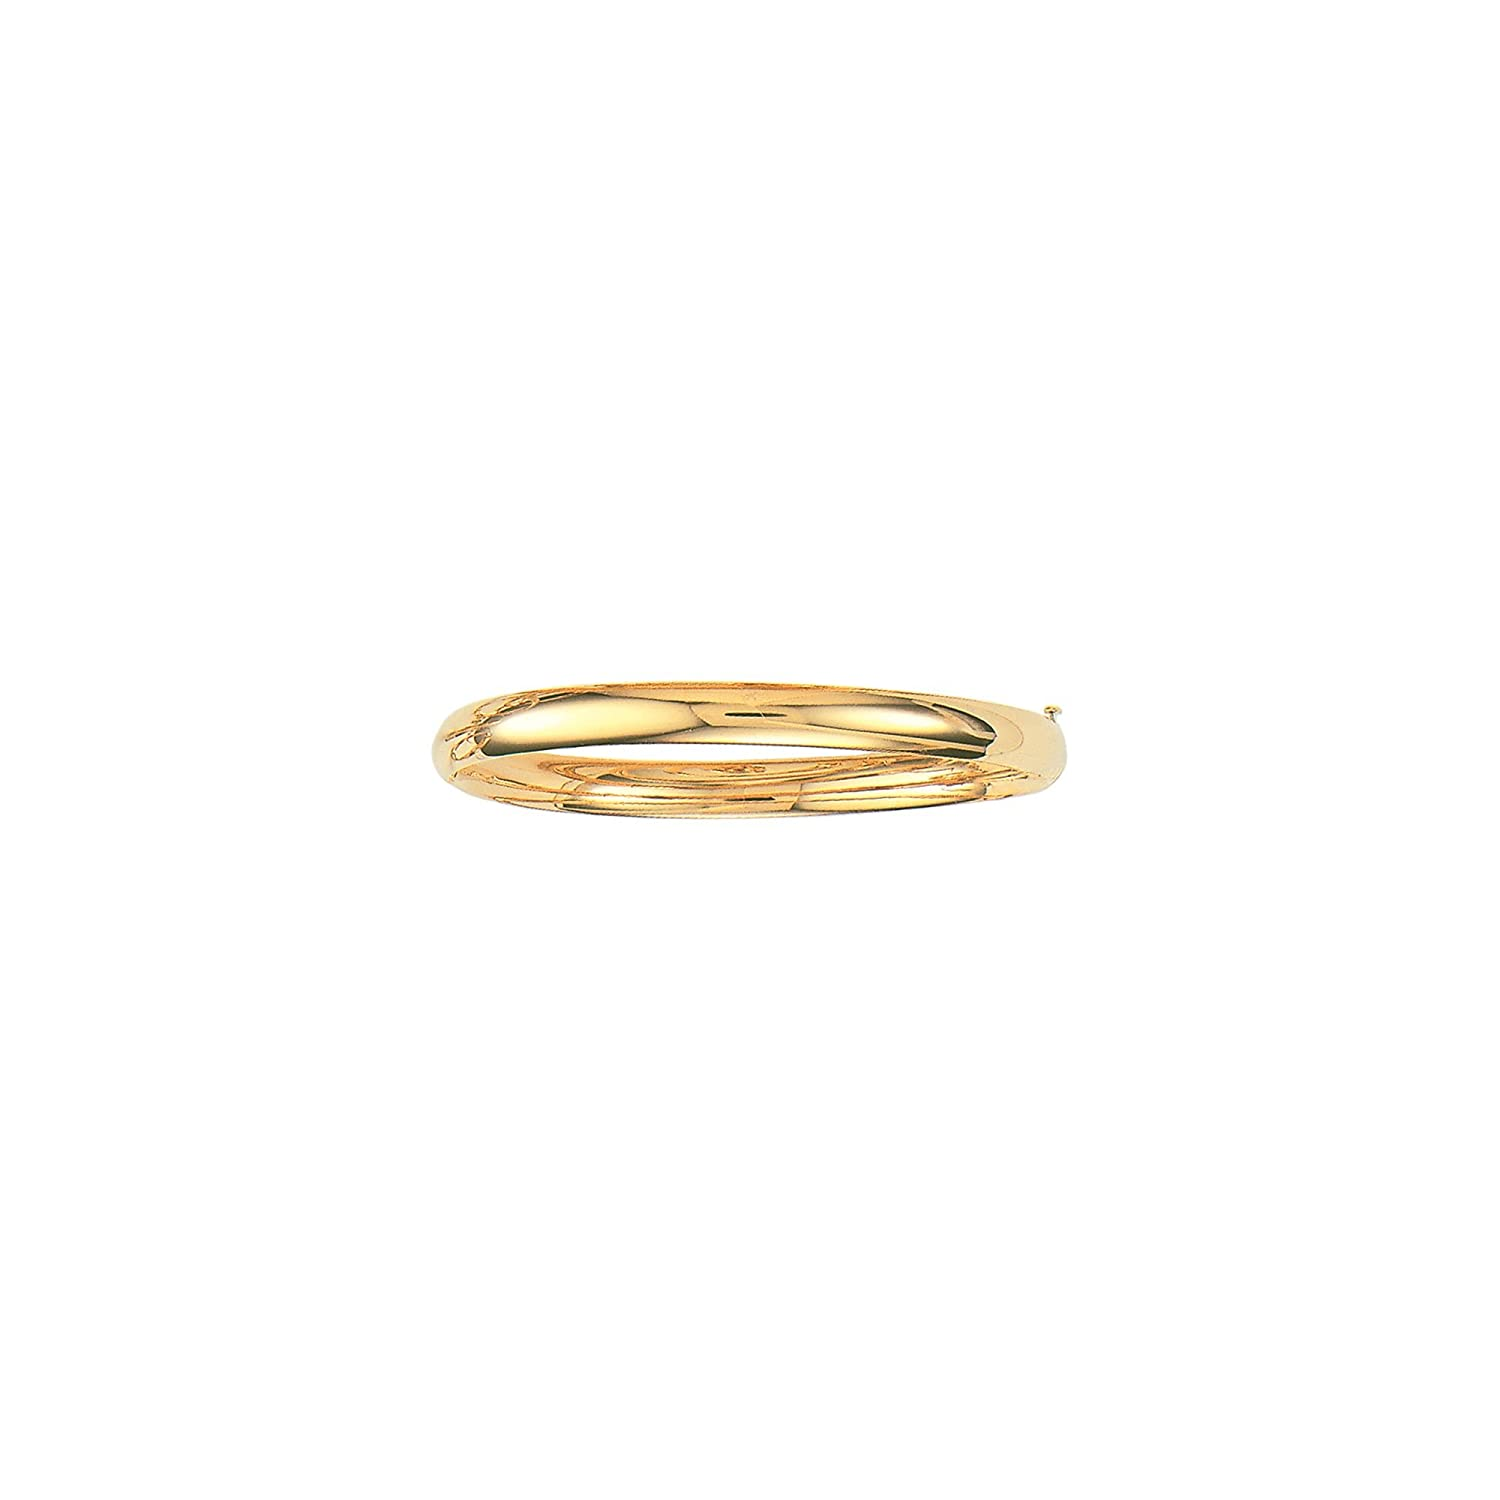 14K Yellow Gold Plain Shiny Round Dome Classic Bangle with Clasp 8, 6.0 mm